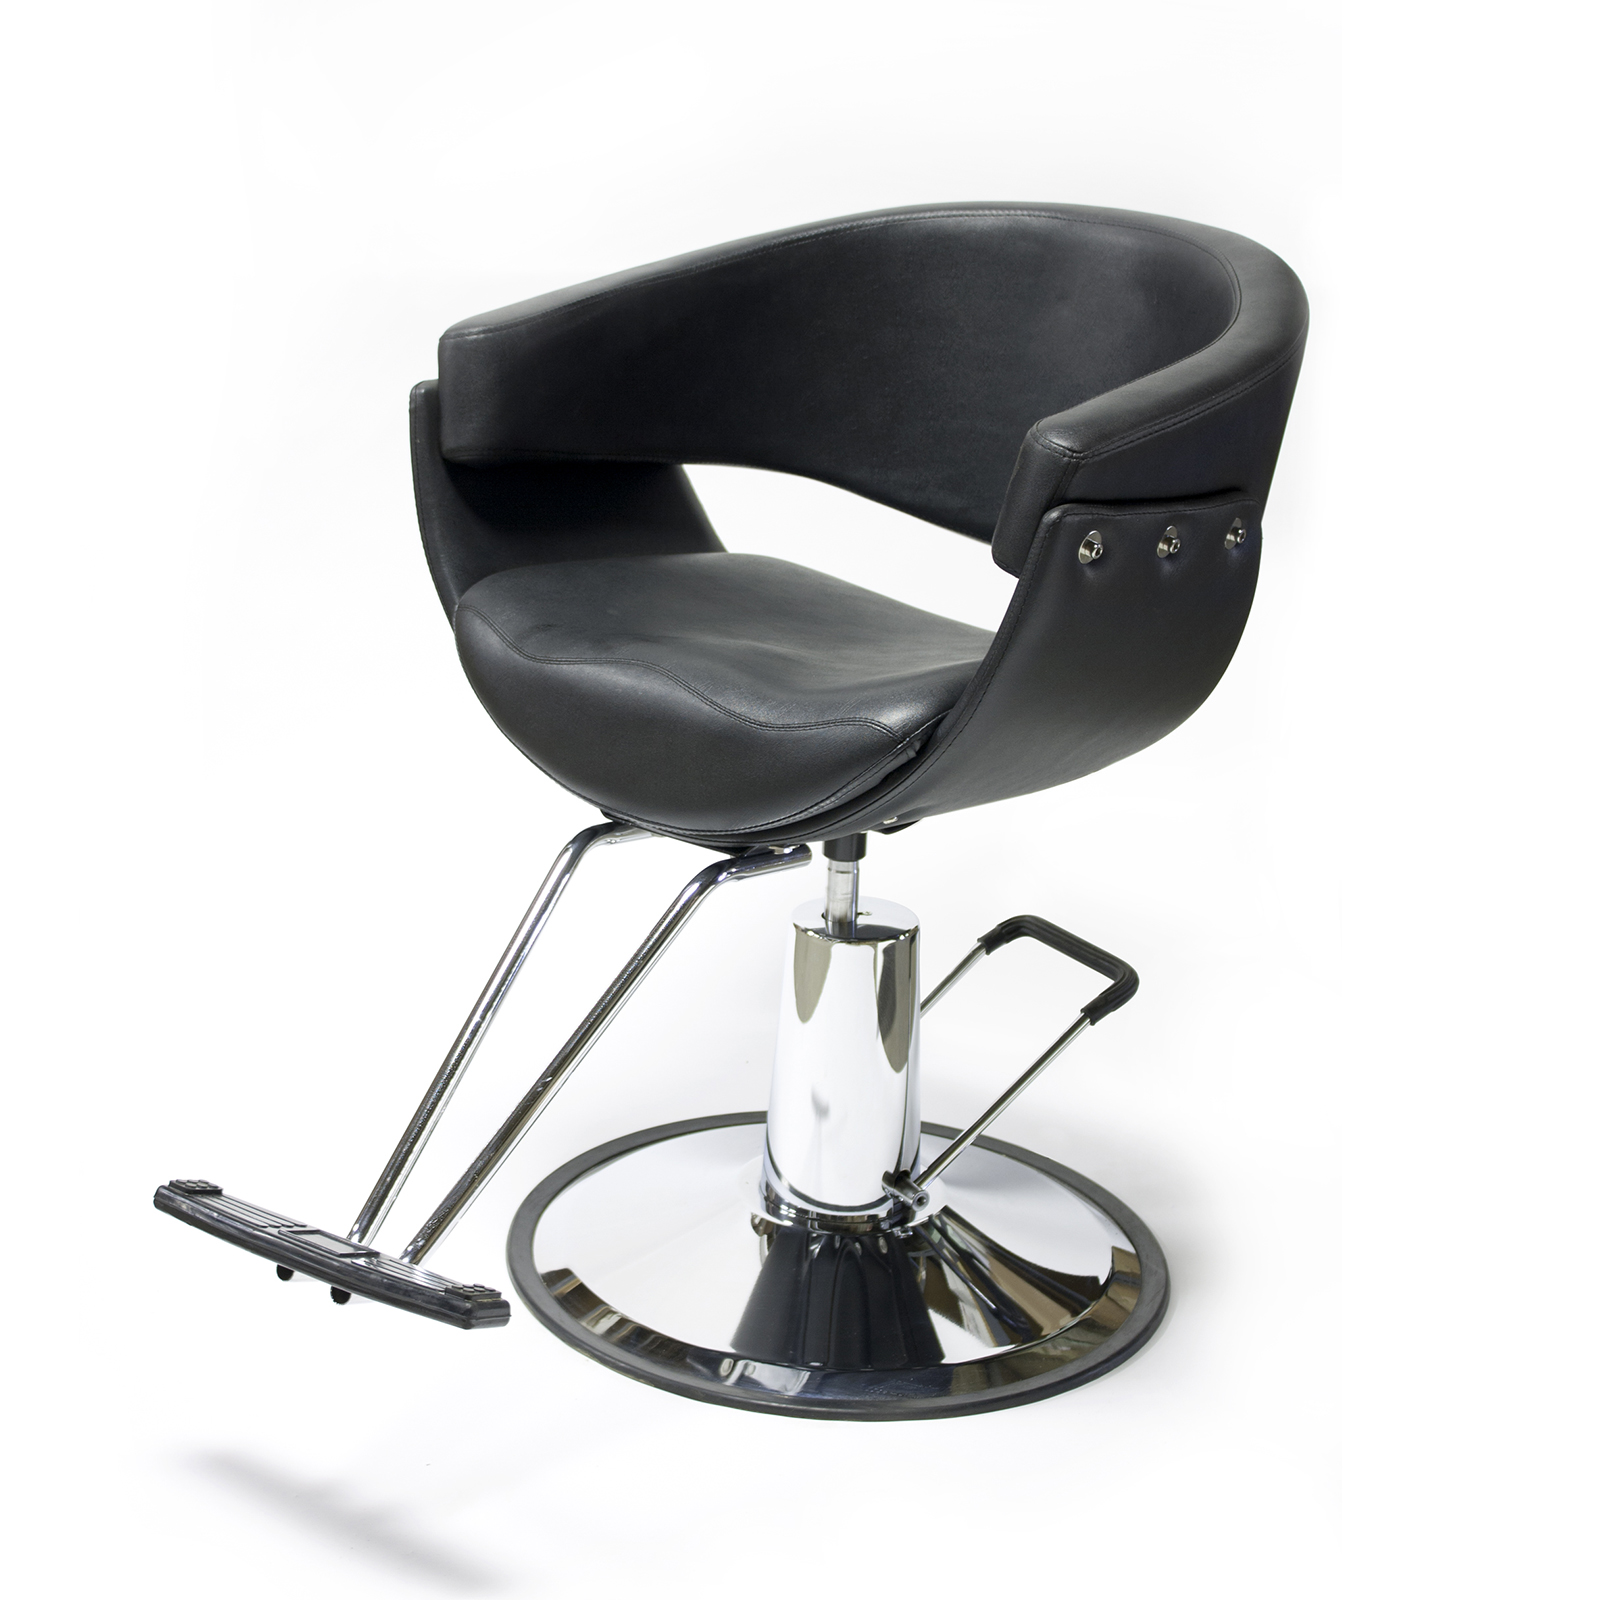 Hydraulic Styling Chair Ar 182 Barber Chair Veeco Salon Furniture Design